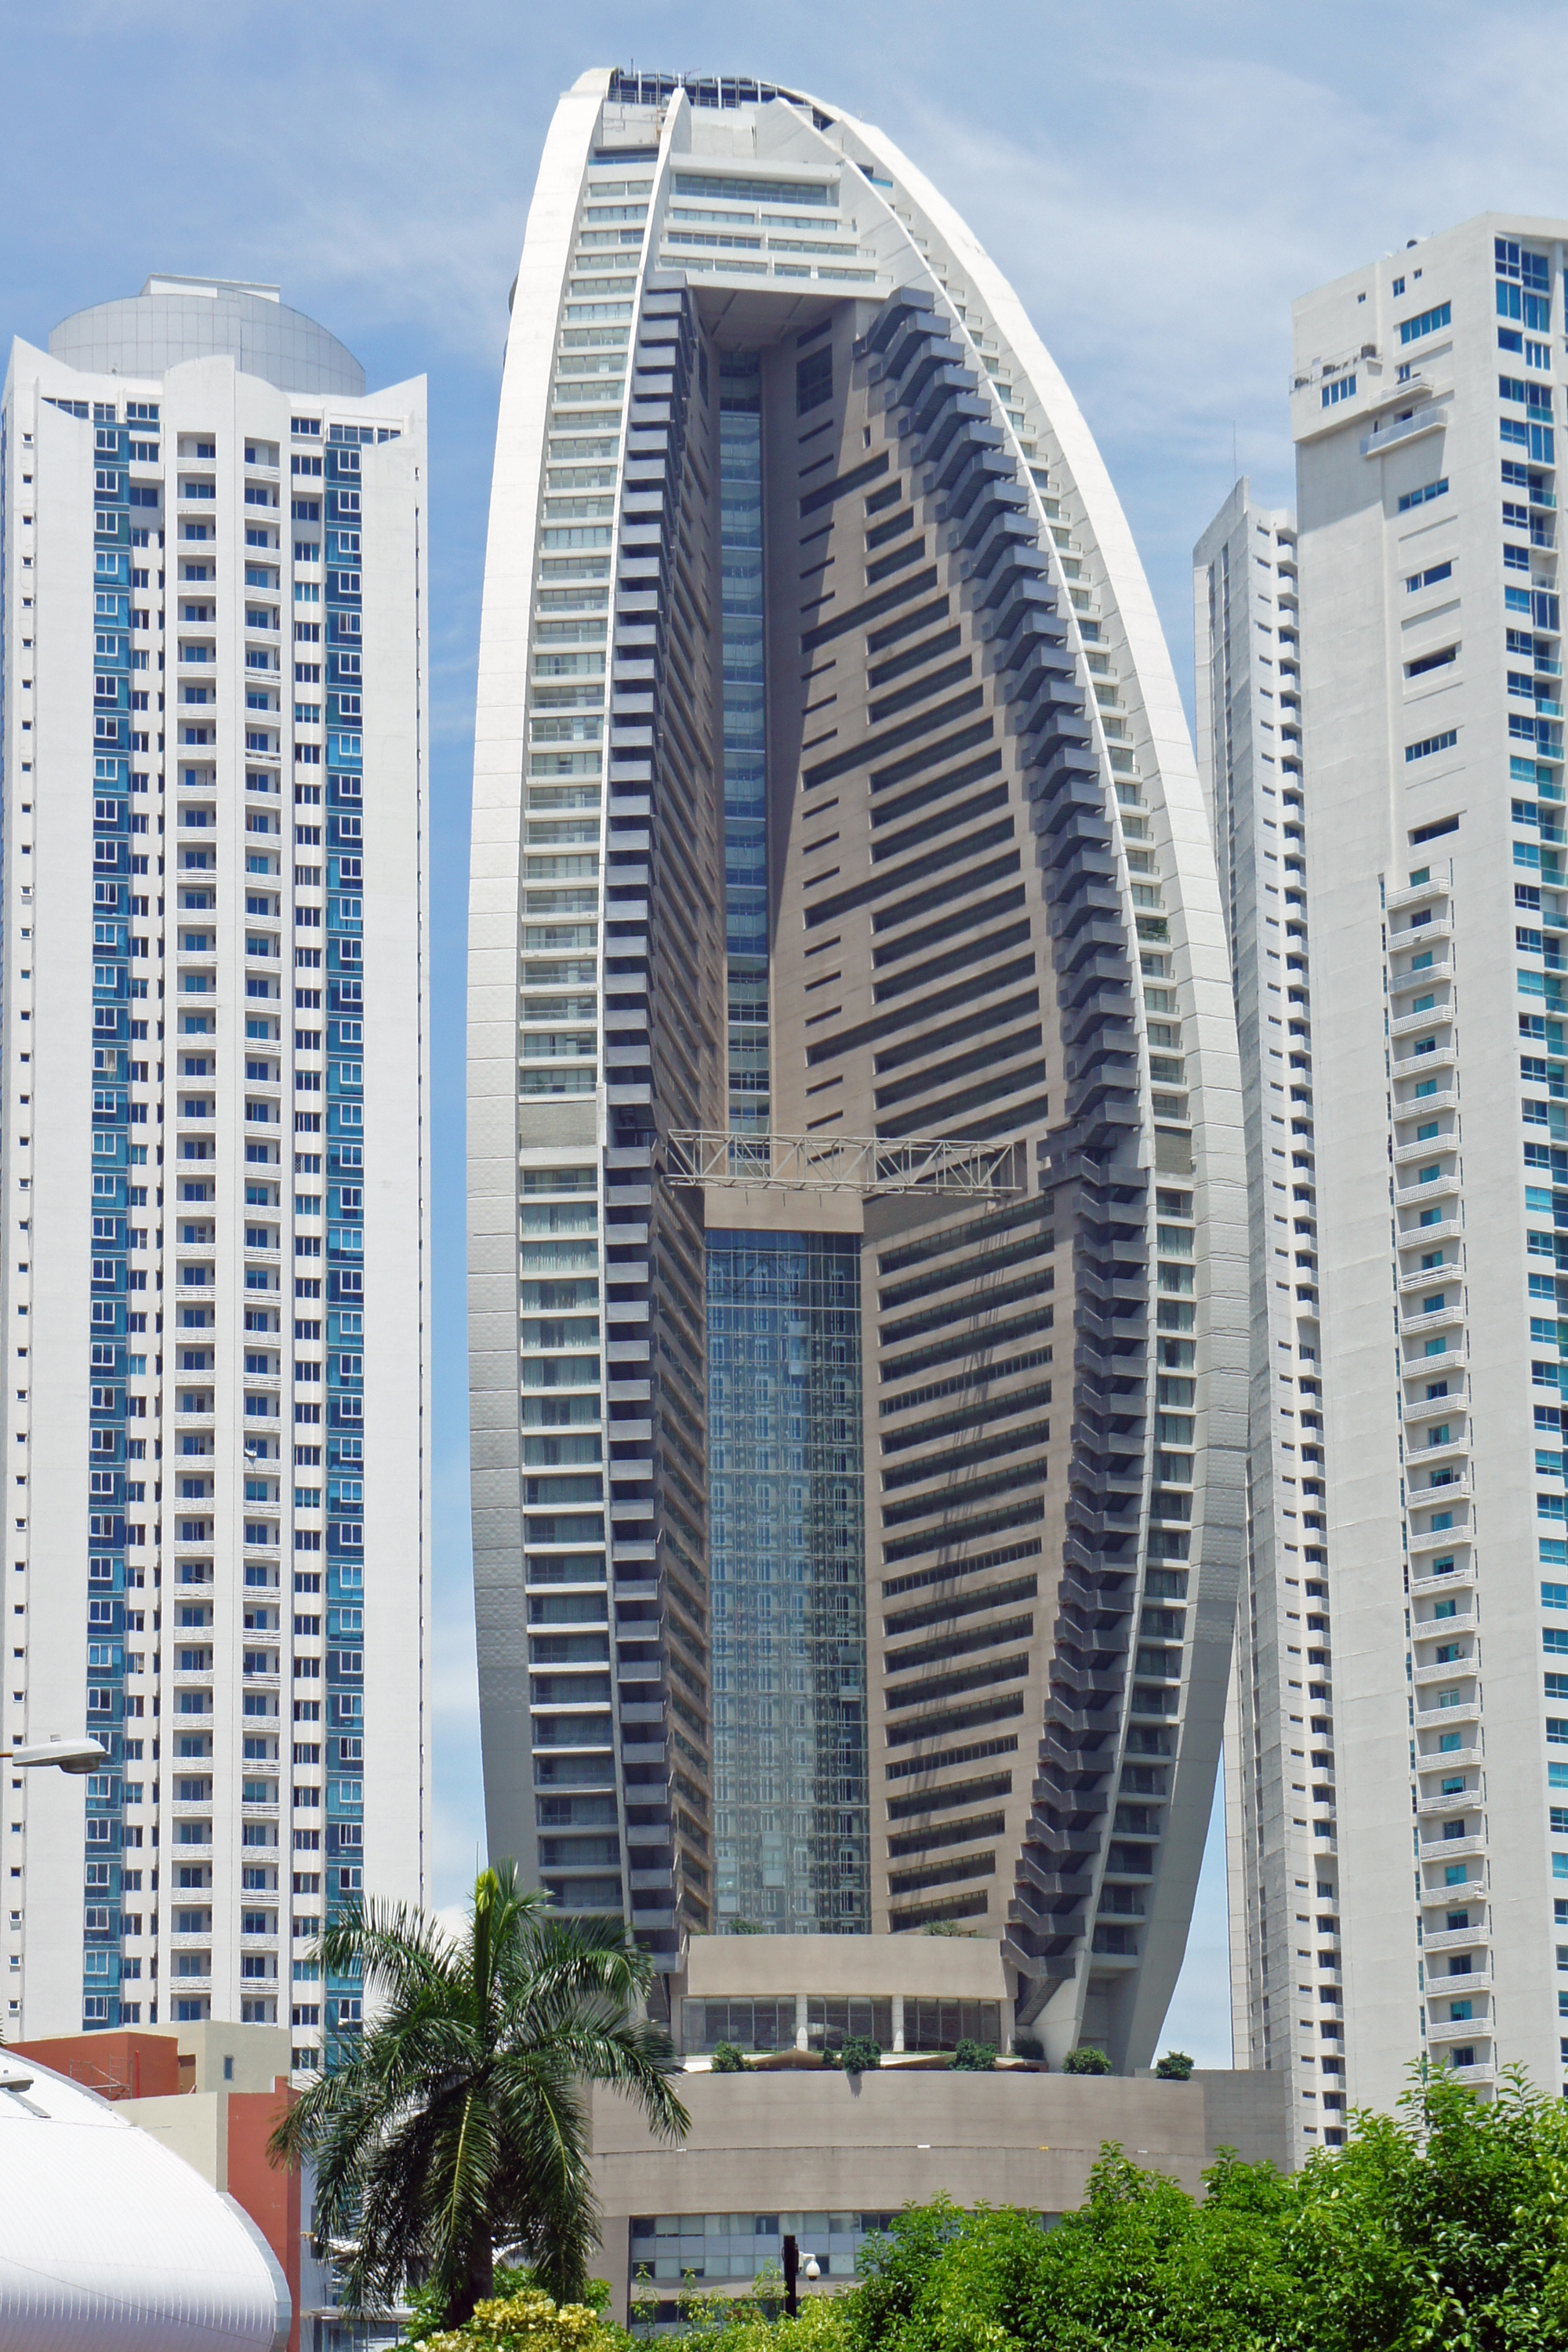 The Trump Organization owns, operates, develops, and invests in real estate worldwide such as Trump Ocean Club International Hotel and Tower (center) in Panama City, Panama.